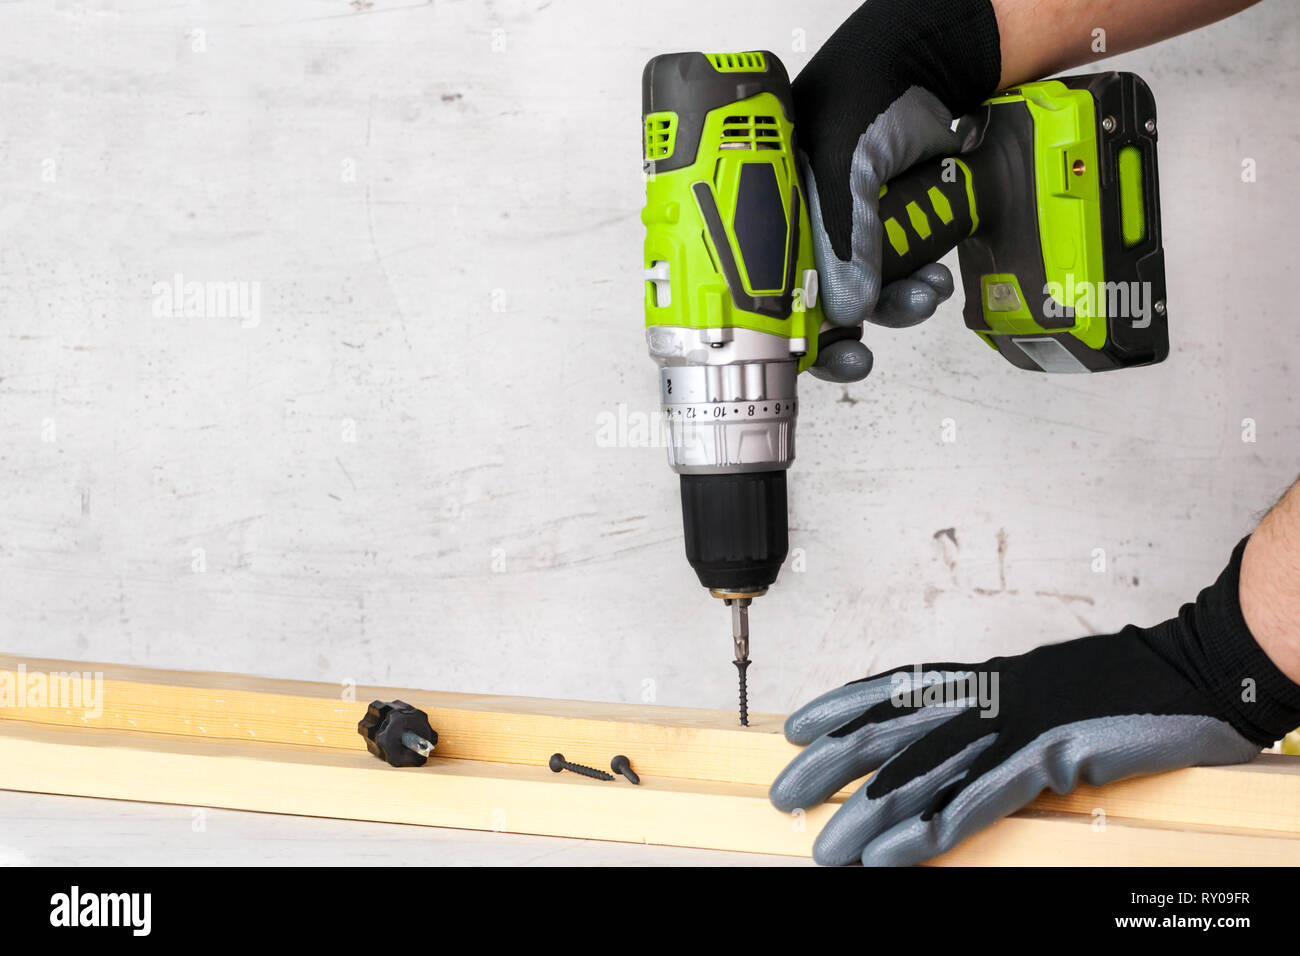 How To Attach To Concrete Wall Without Drilling